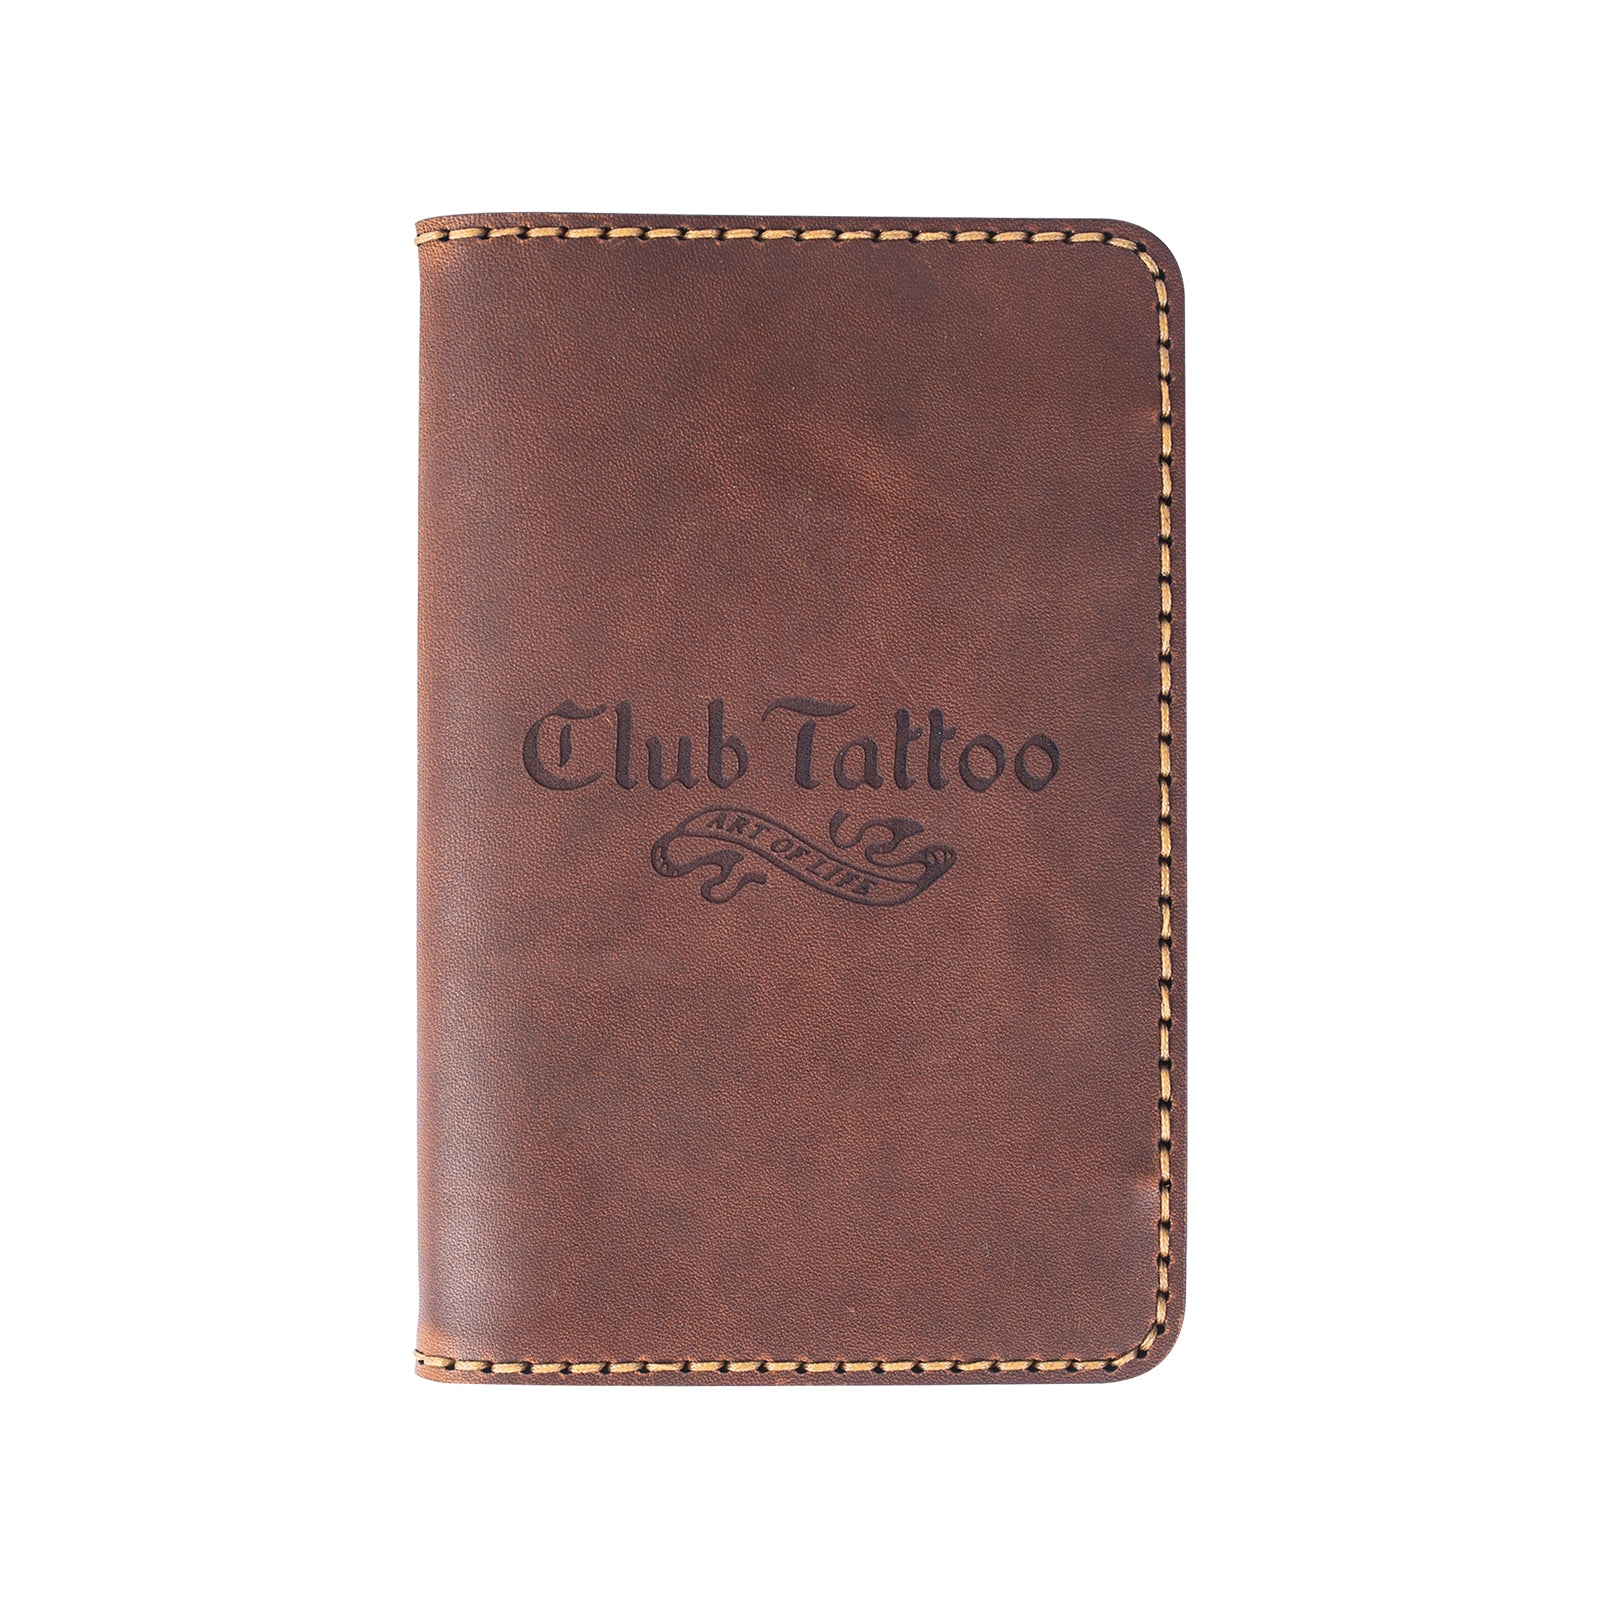 Leather Field Journal Wallet - Club Tattoo